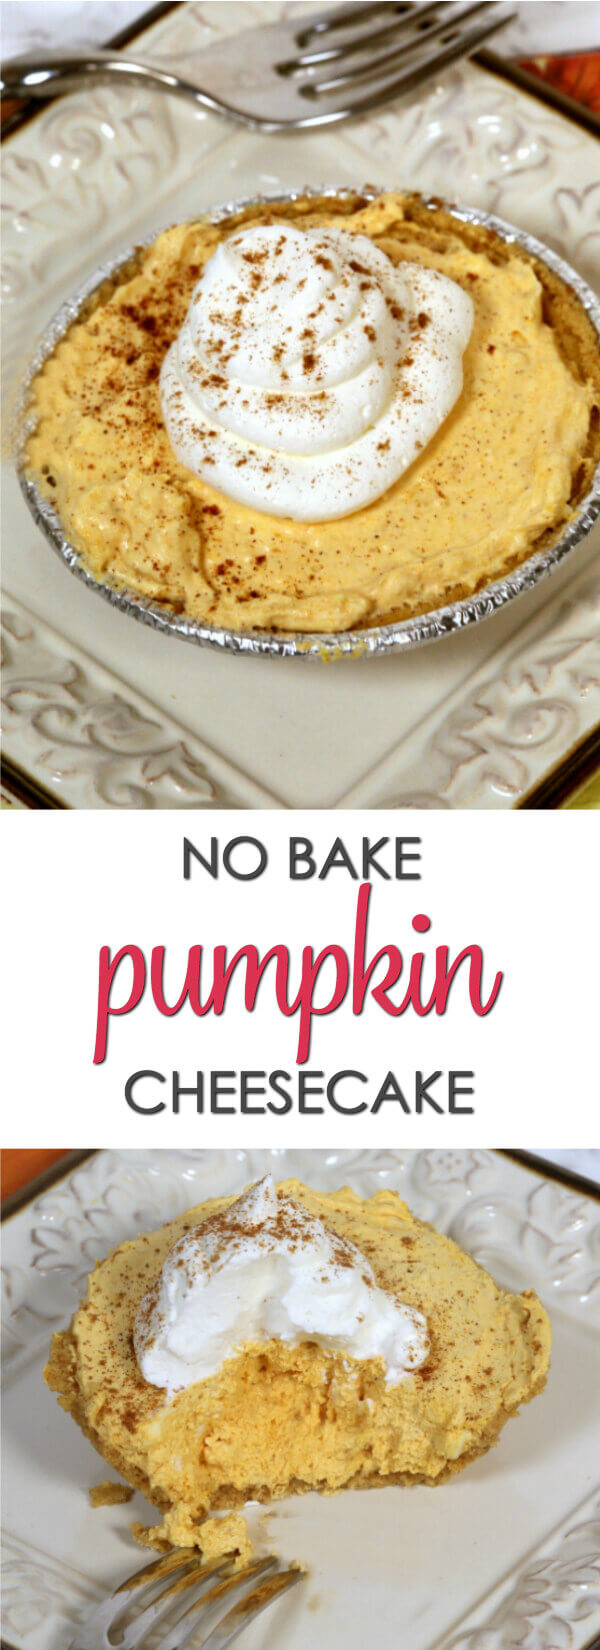 This easy no bake Pumpkin Cheesecake recipe takes minutes to make and is always a crowd pleaser. 